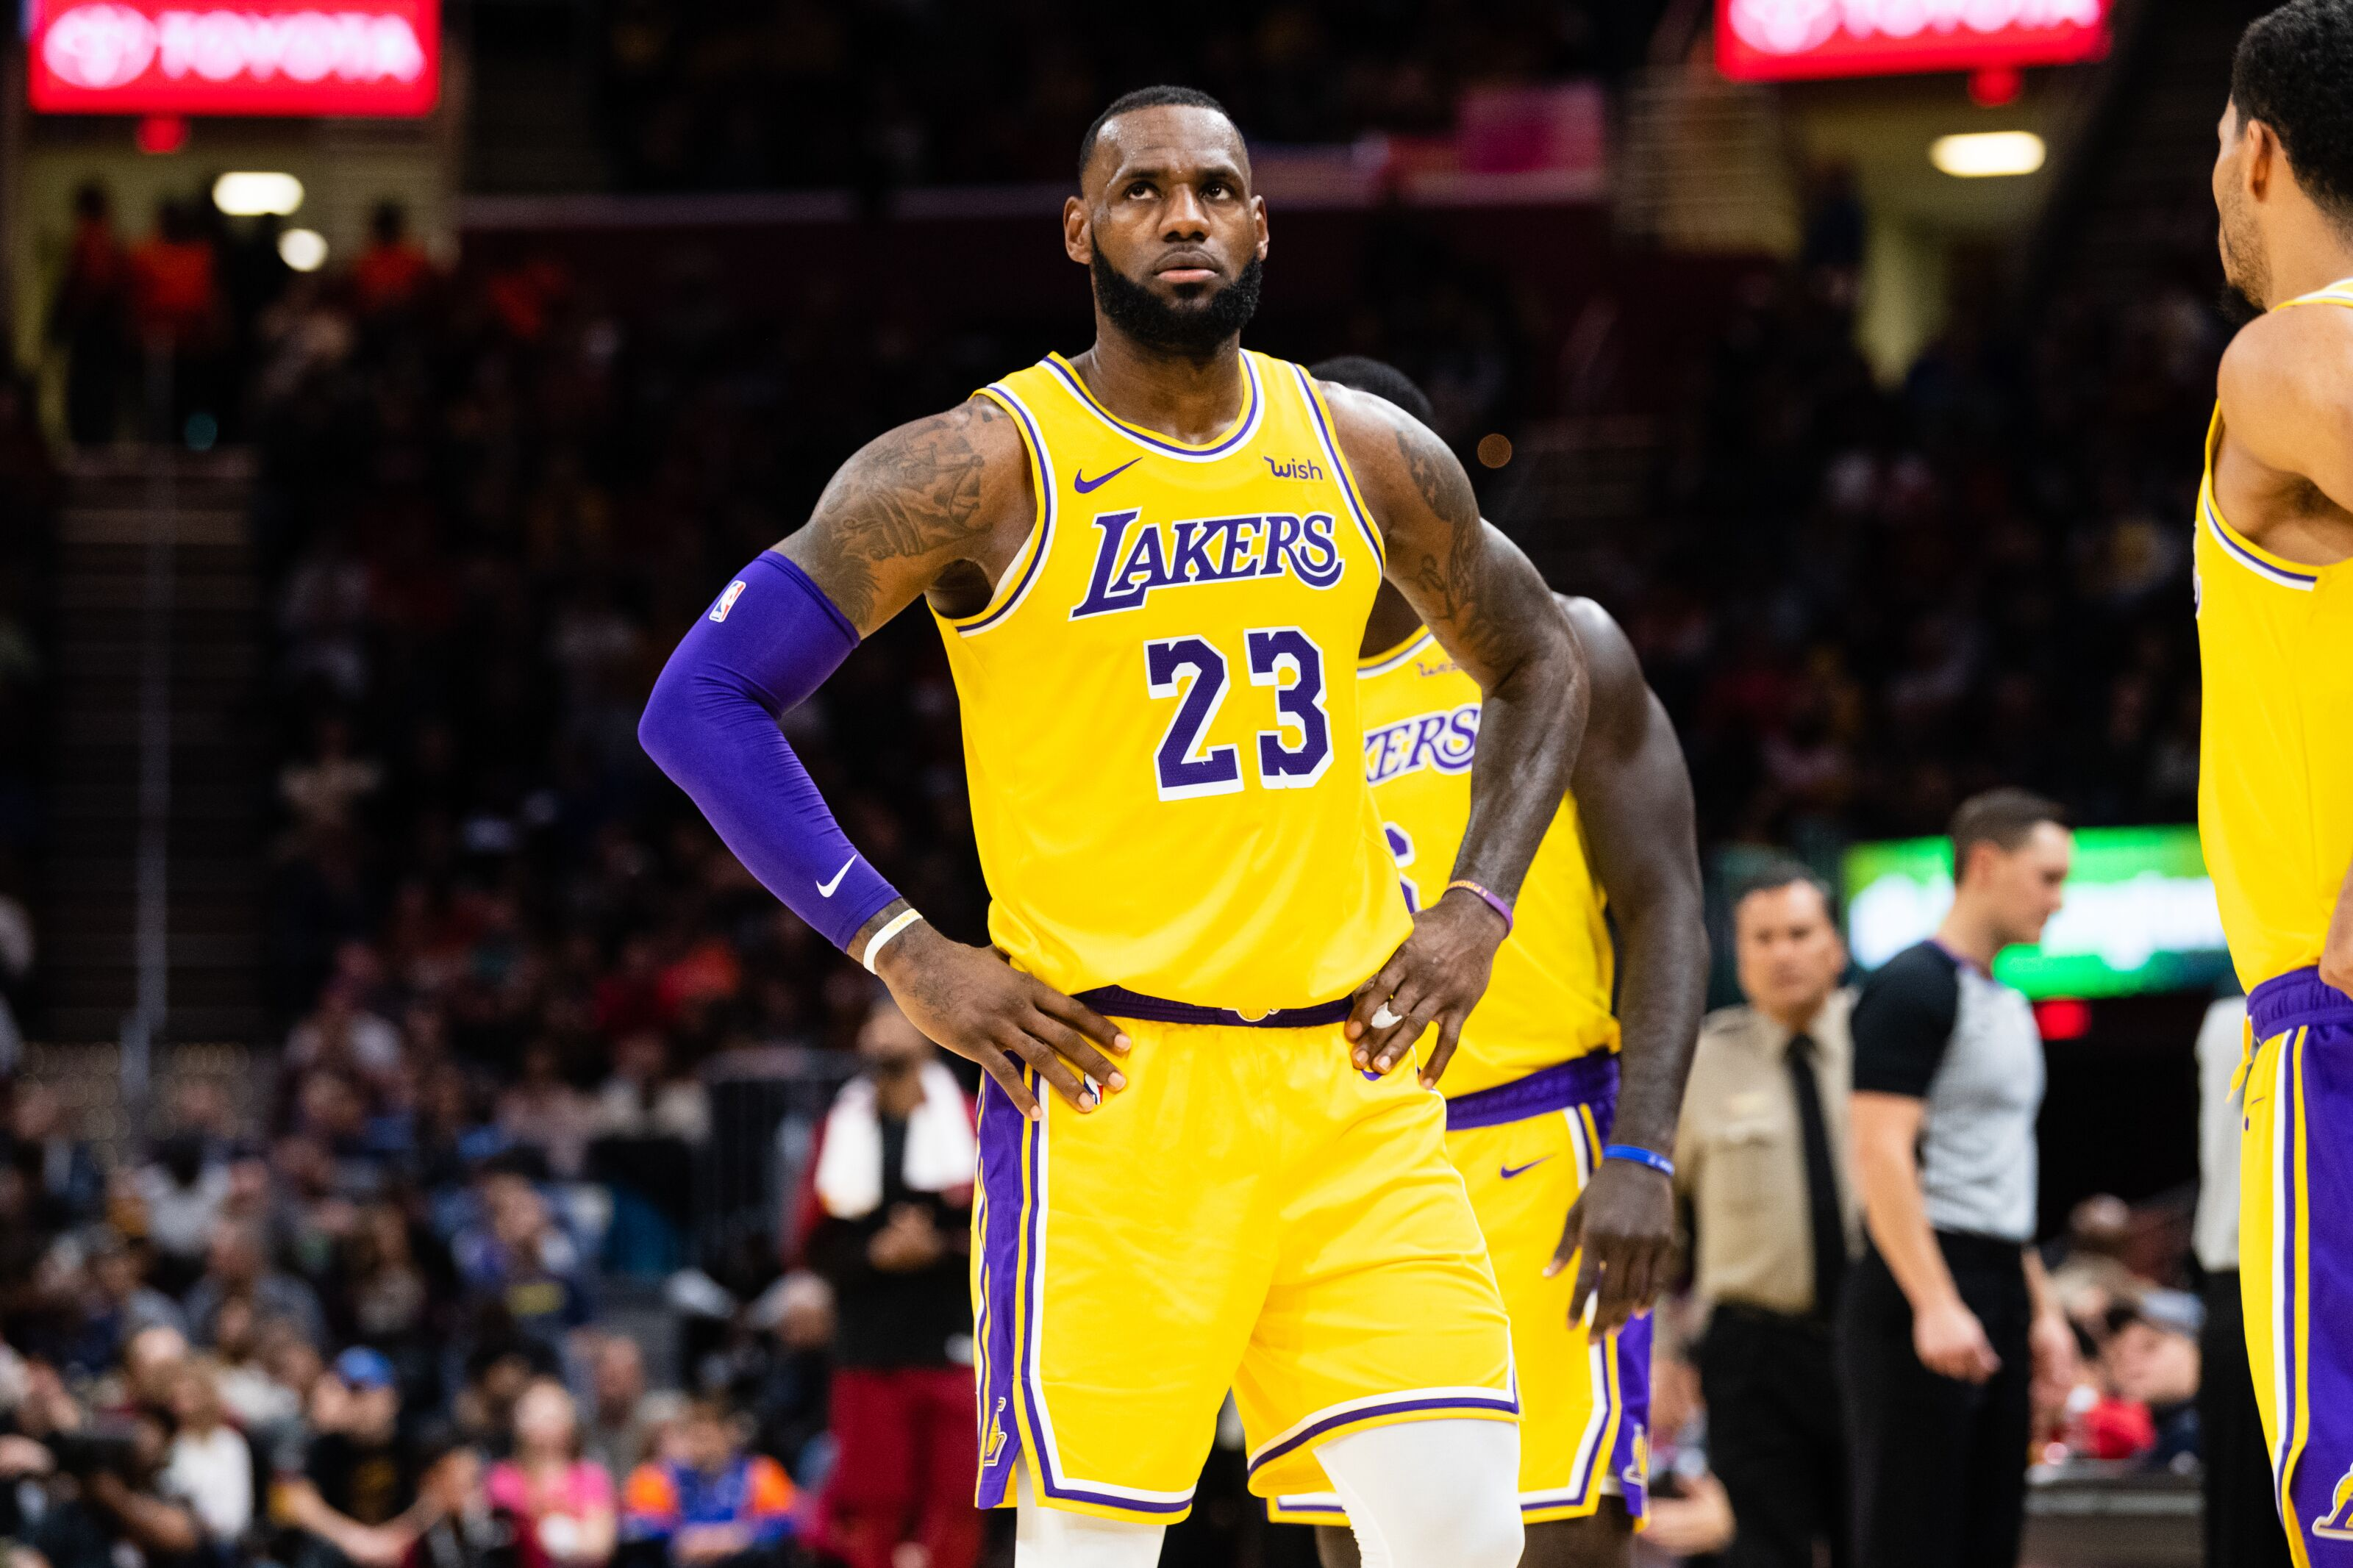 0b8515a2770 Los Angeles Lakers: LeBron James comes home to Cleveland...3 lessons!